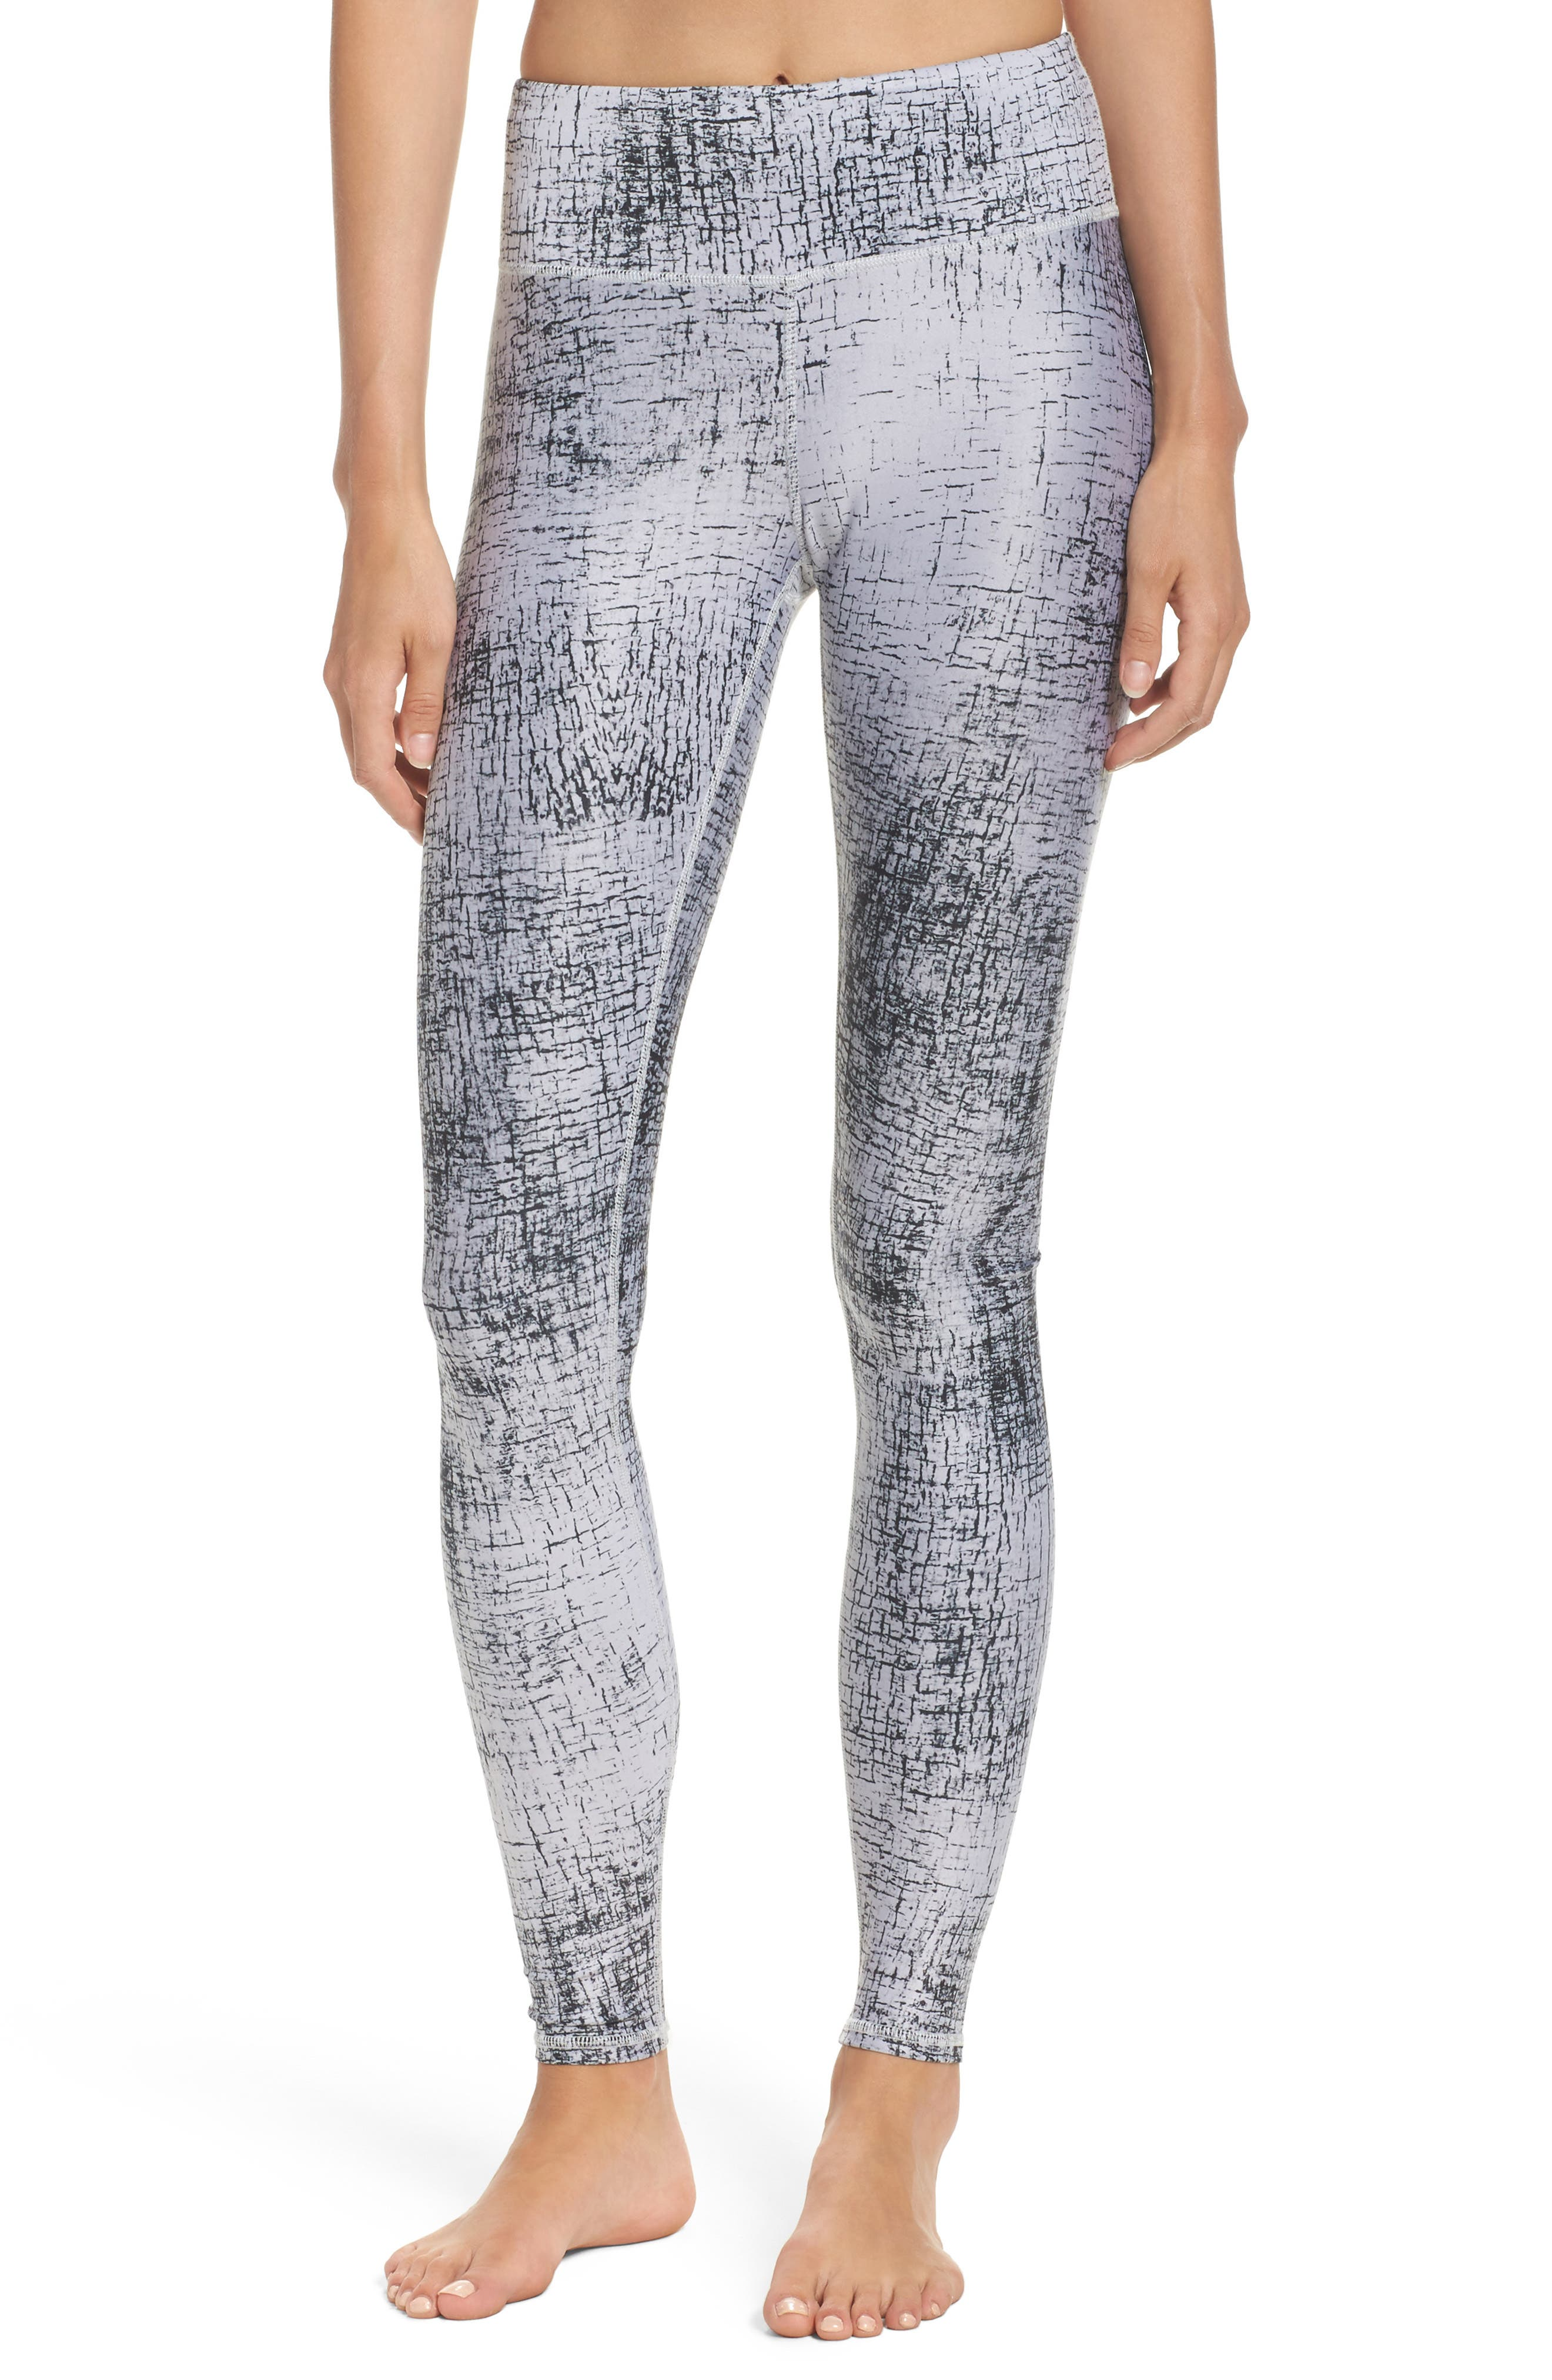 Tech Lift Airbrush Leggings,                             Main thumbnail 1, color,                             Crackle